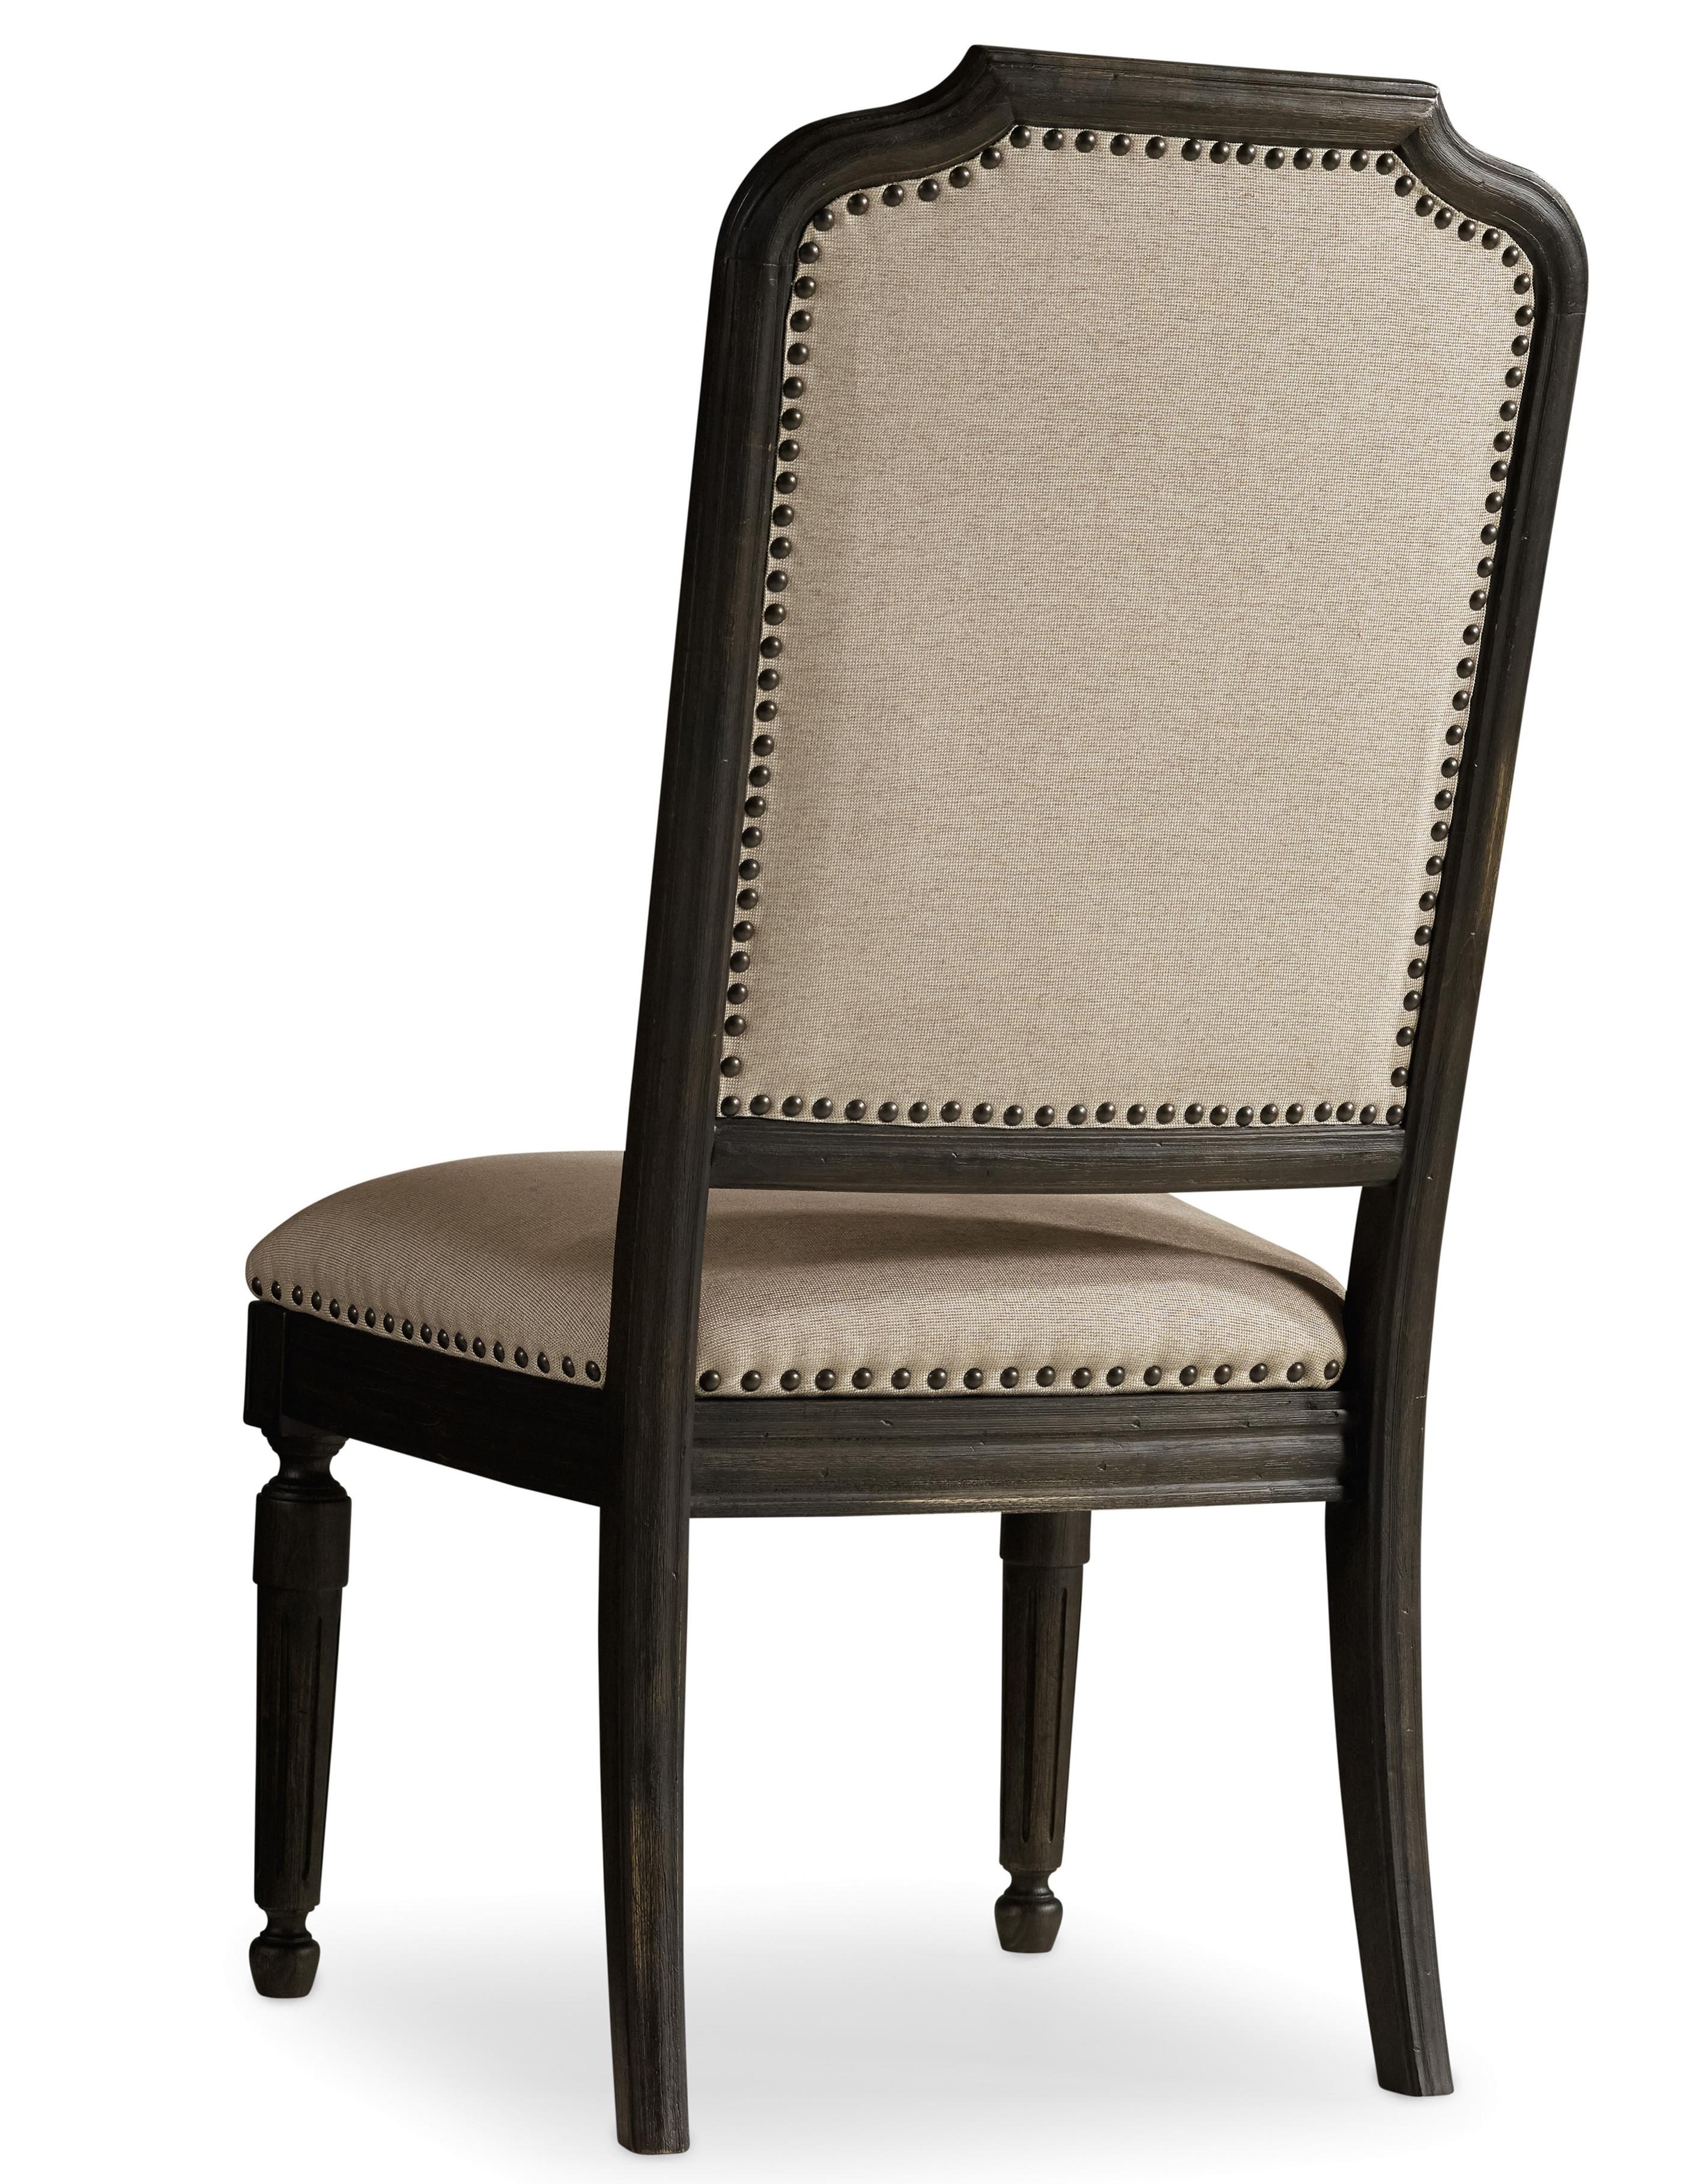 Corsica Upholstered Side Chair by Hooker Furniture at Baer's Furniture